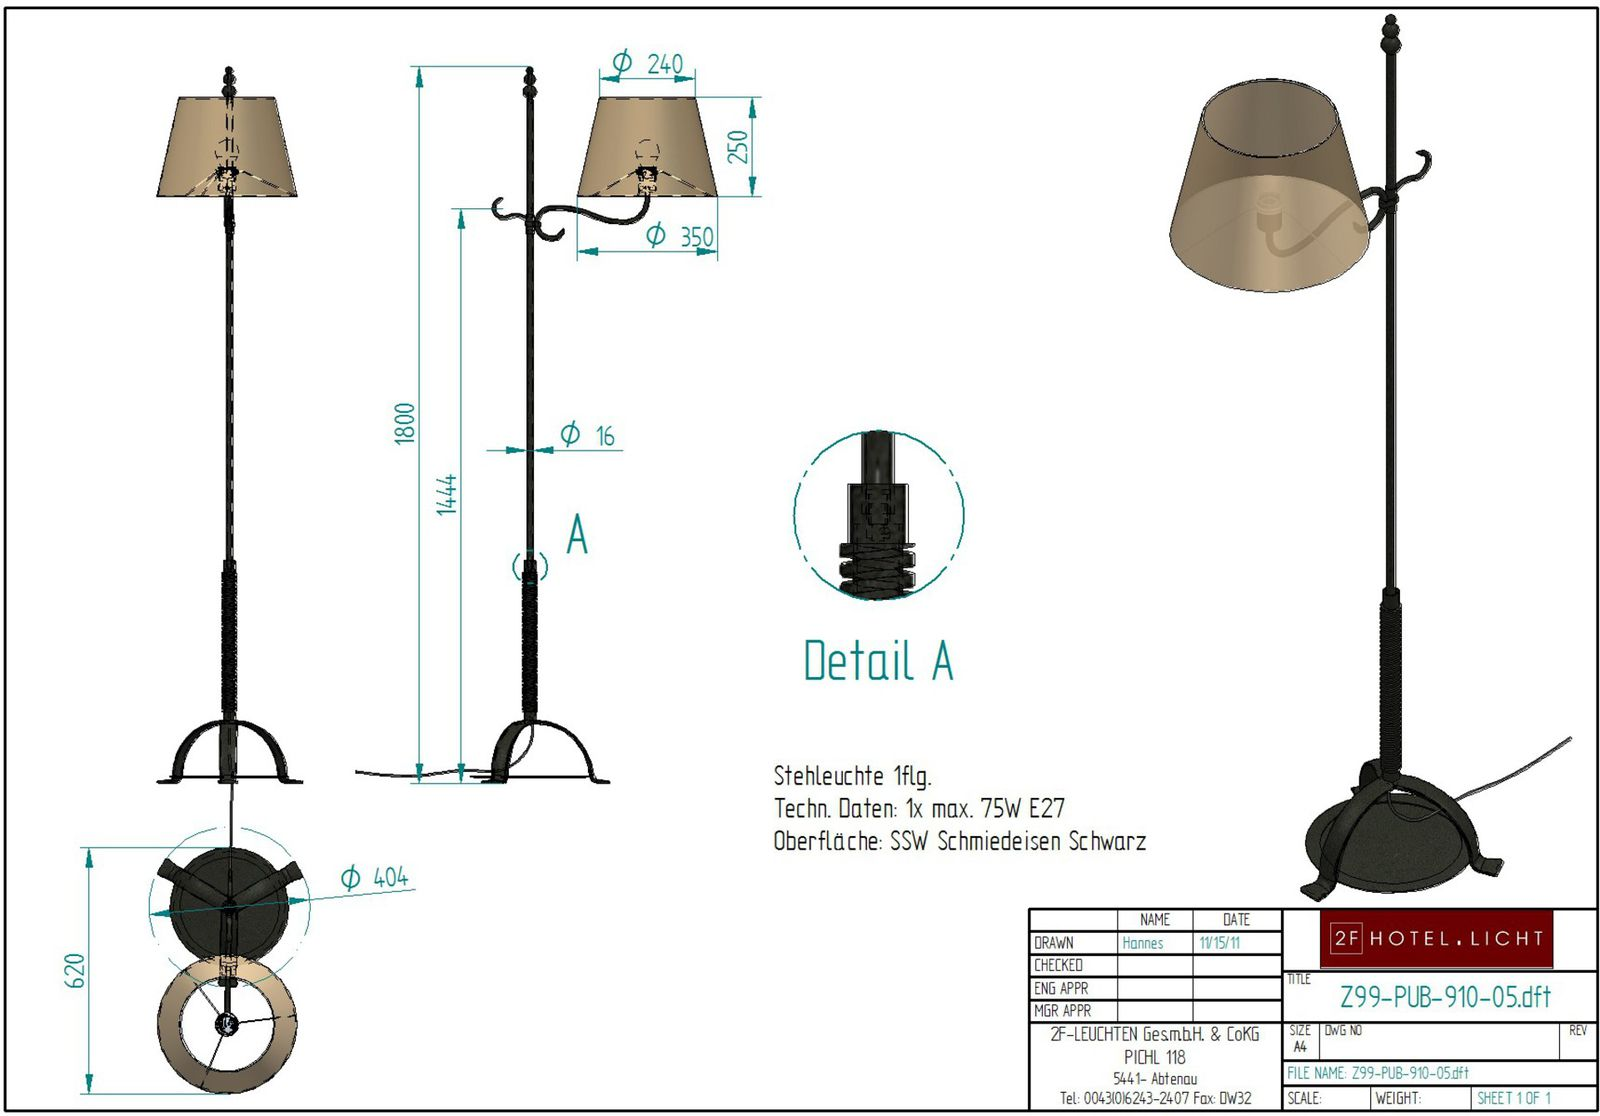 Floor lamp, height=1800, wide complete=620mm, shade: height=250mm, diameter: 240x350mm, surface: black wrought iron, techn. details: 1xE27, 75W